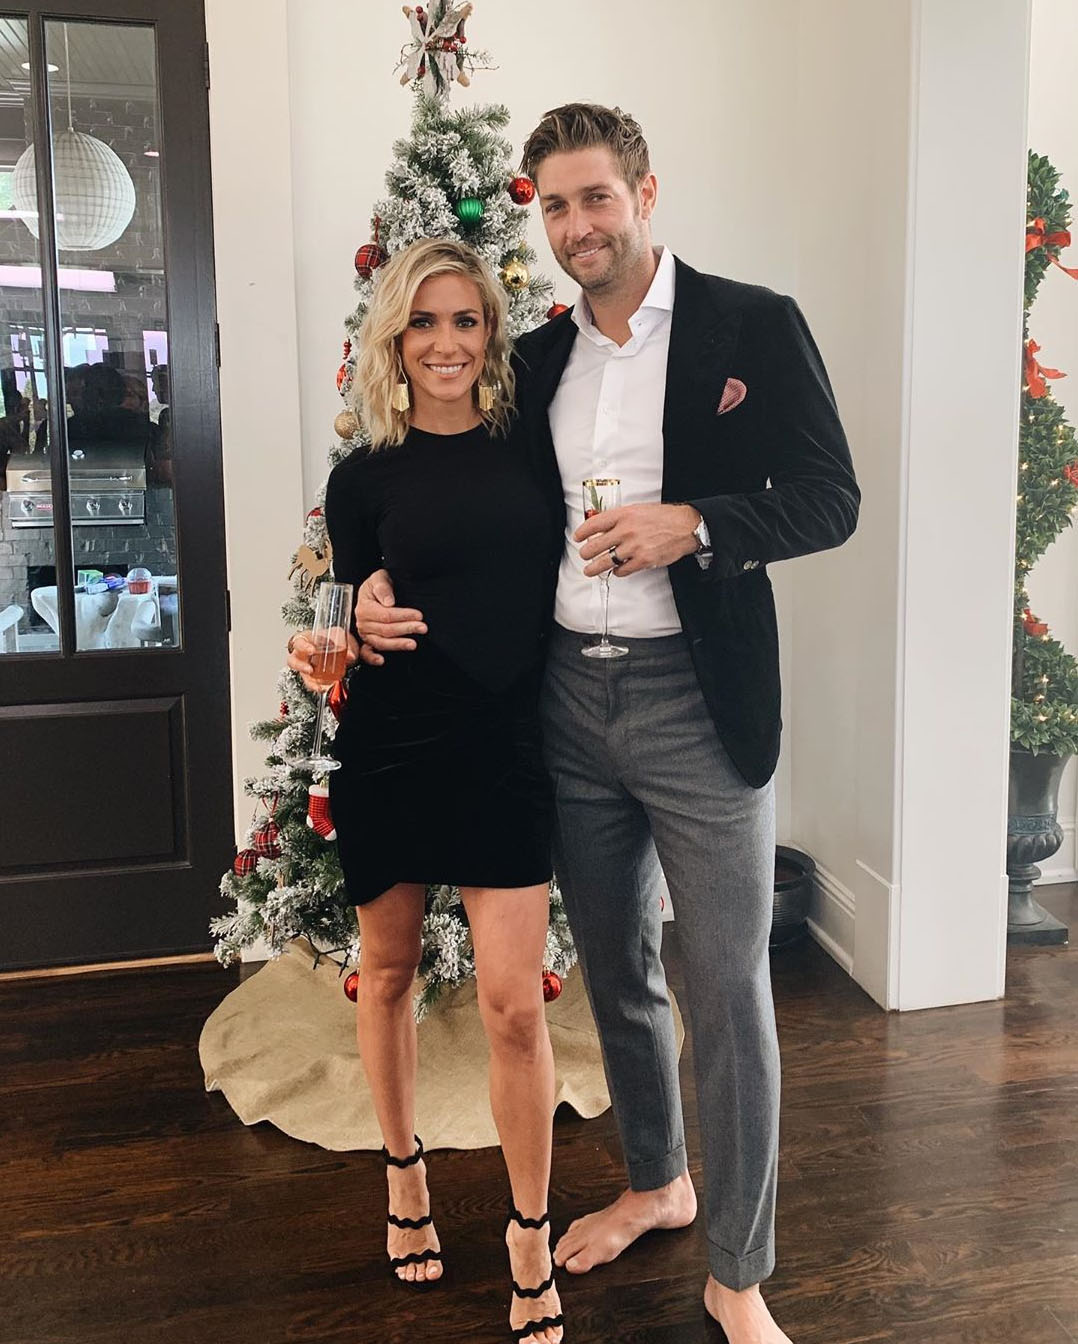 Kristin Cavallari and Jay Cutler in front of a Christmas tree. Jay is barefoot for some reason.